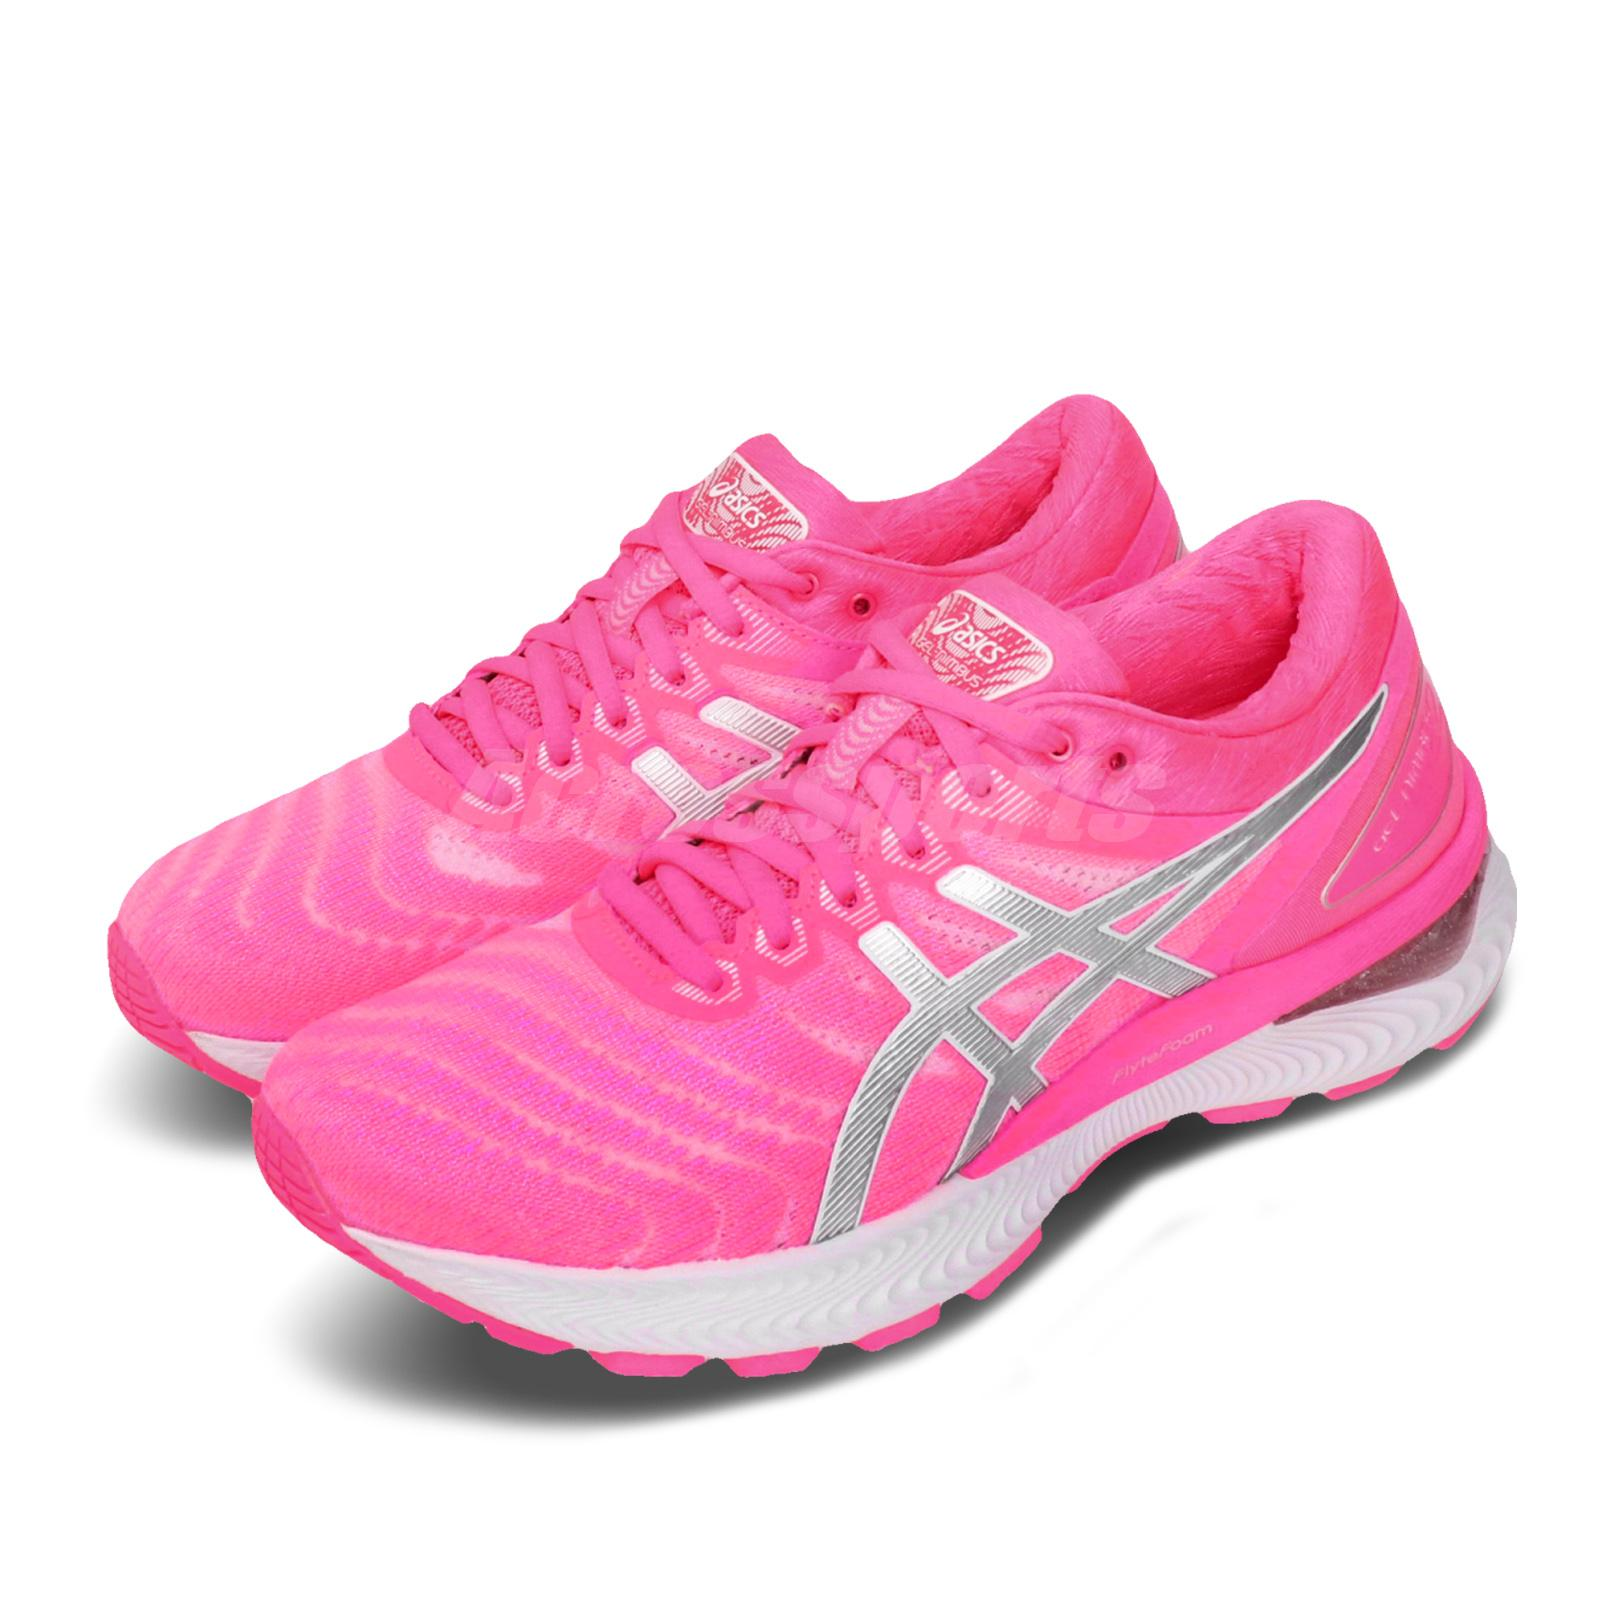 Details about Asics Gel-Nimbus 22 FlyteFoam Pink Silver Womens Road Running  Shoes 1012A587-701